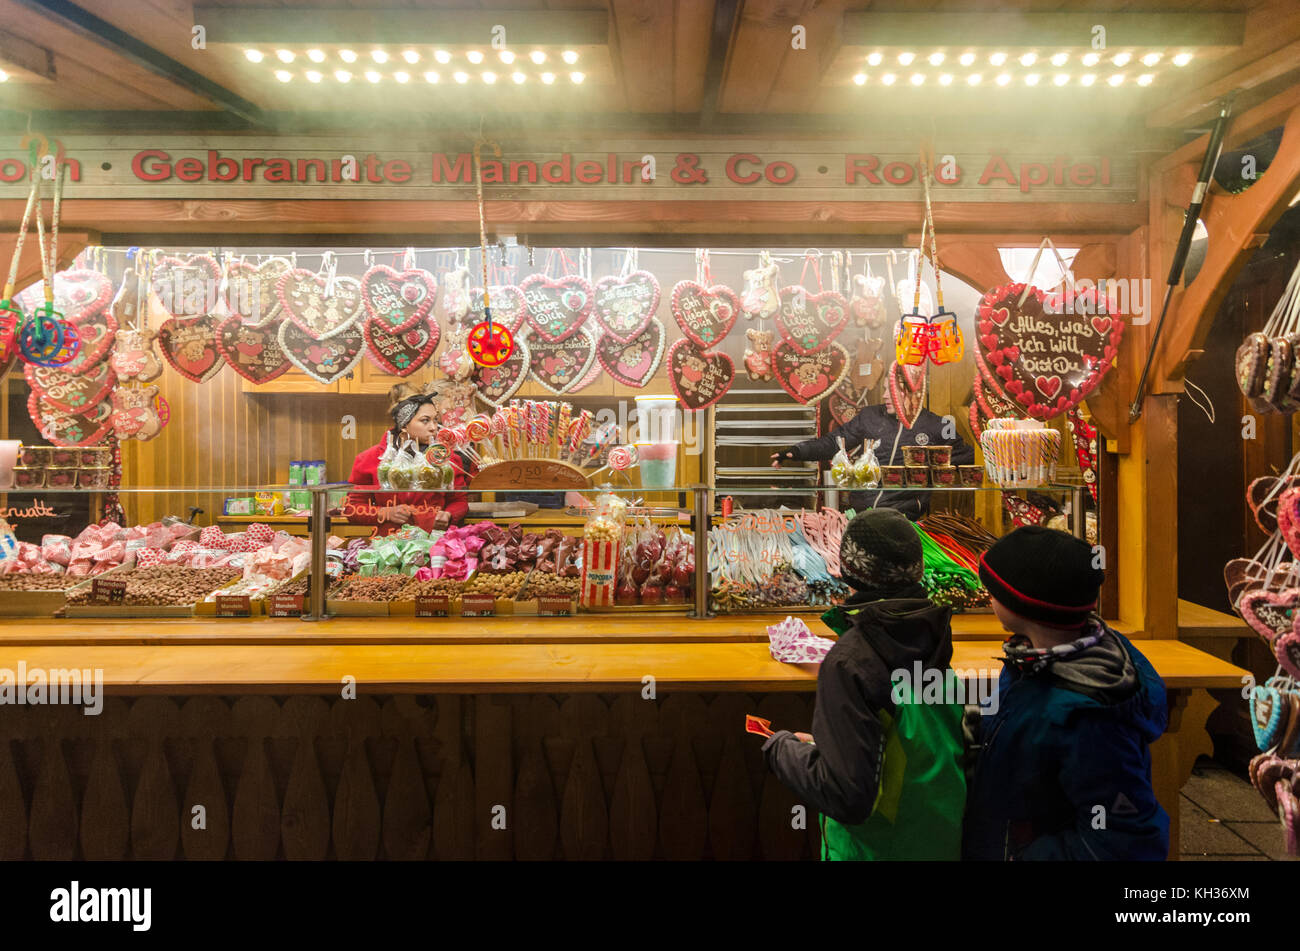 Children buying sweets and candy from a German Christmas Market stall, Berlin, Germany - Stock Image